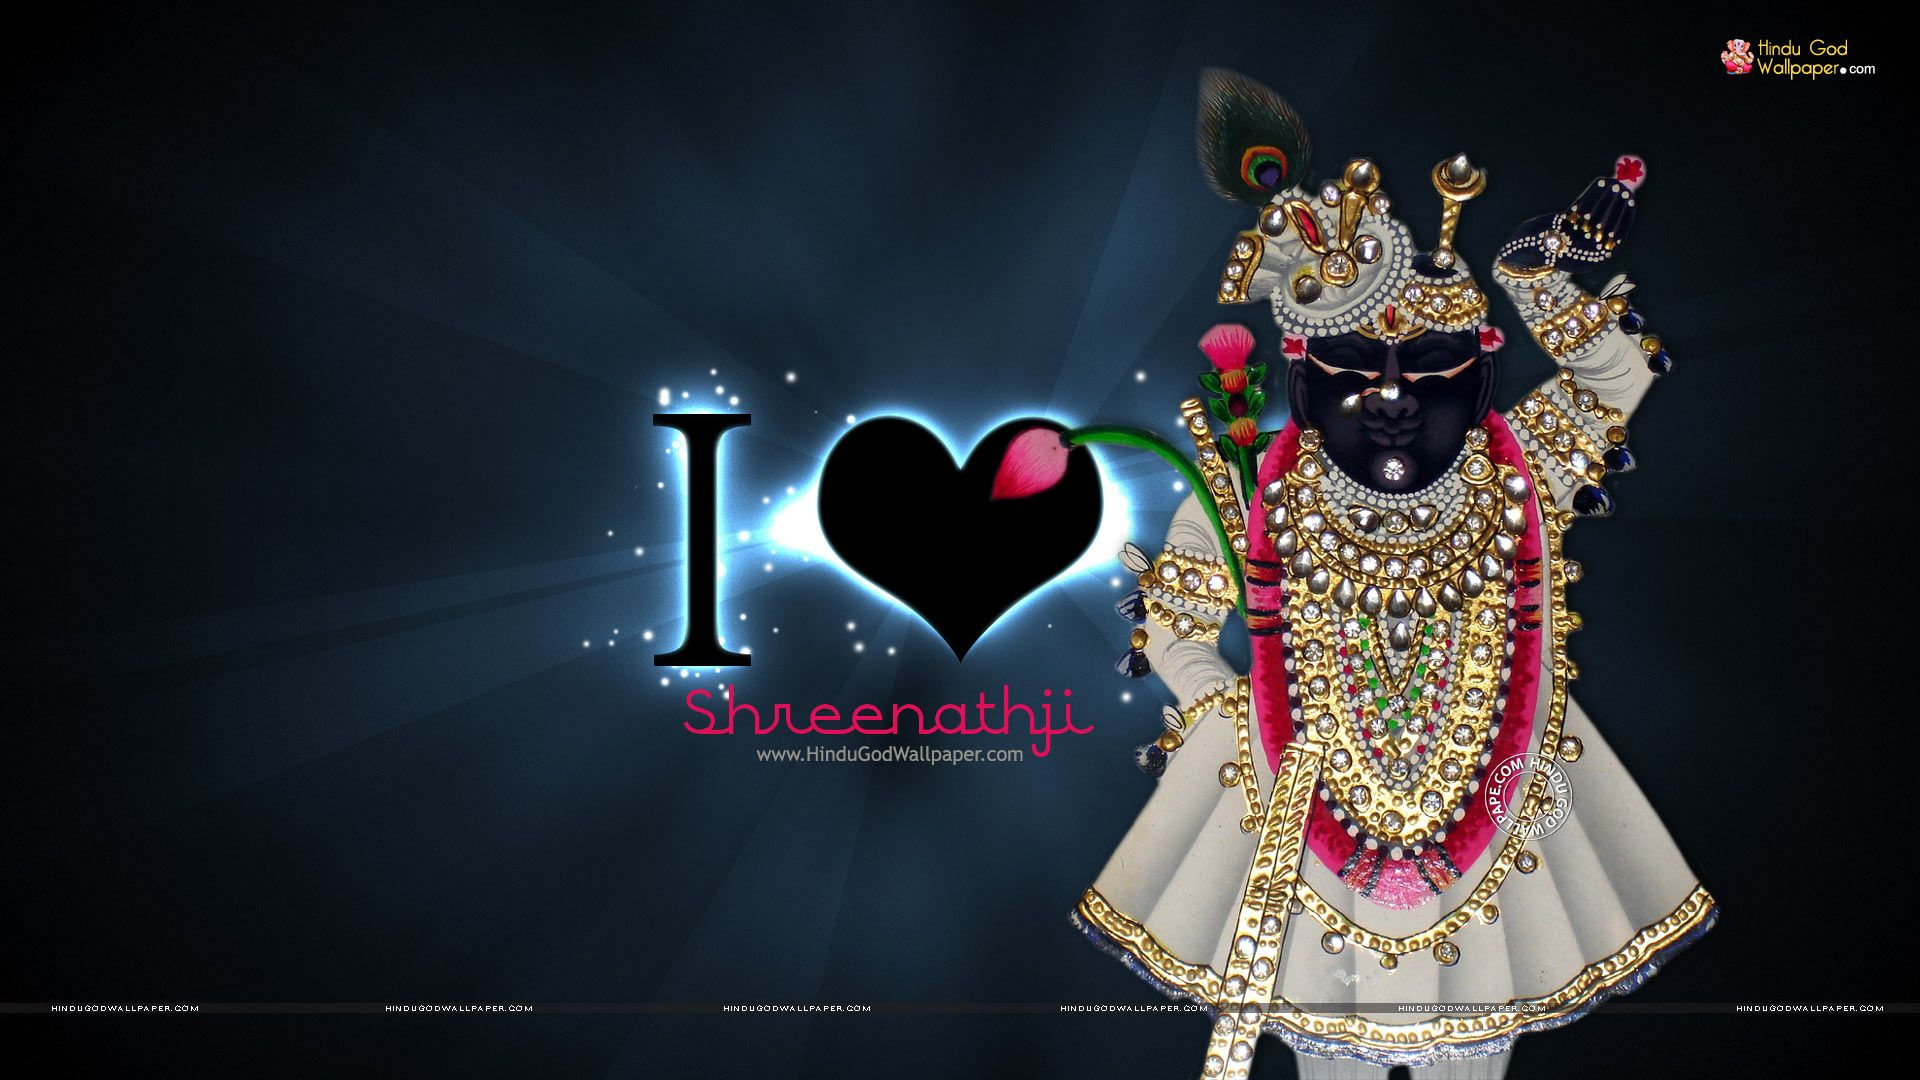 shreenathji hd wallpaper 1080p full size free download